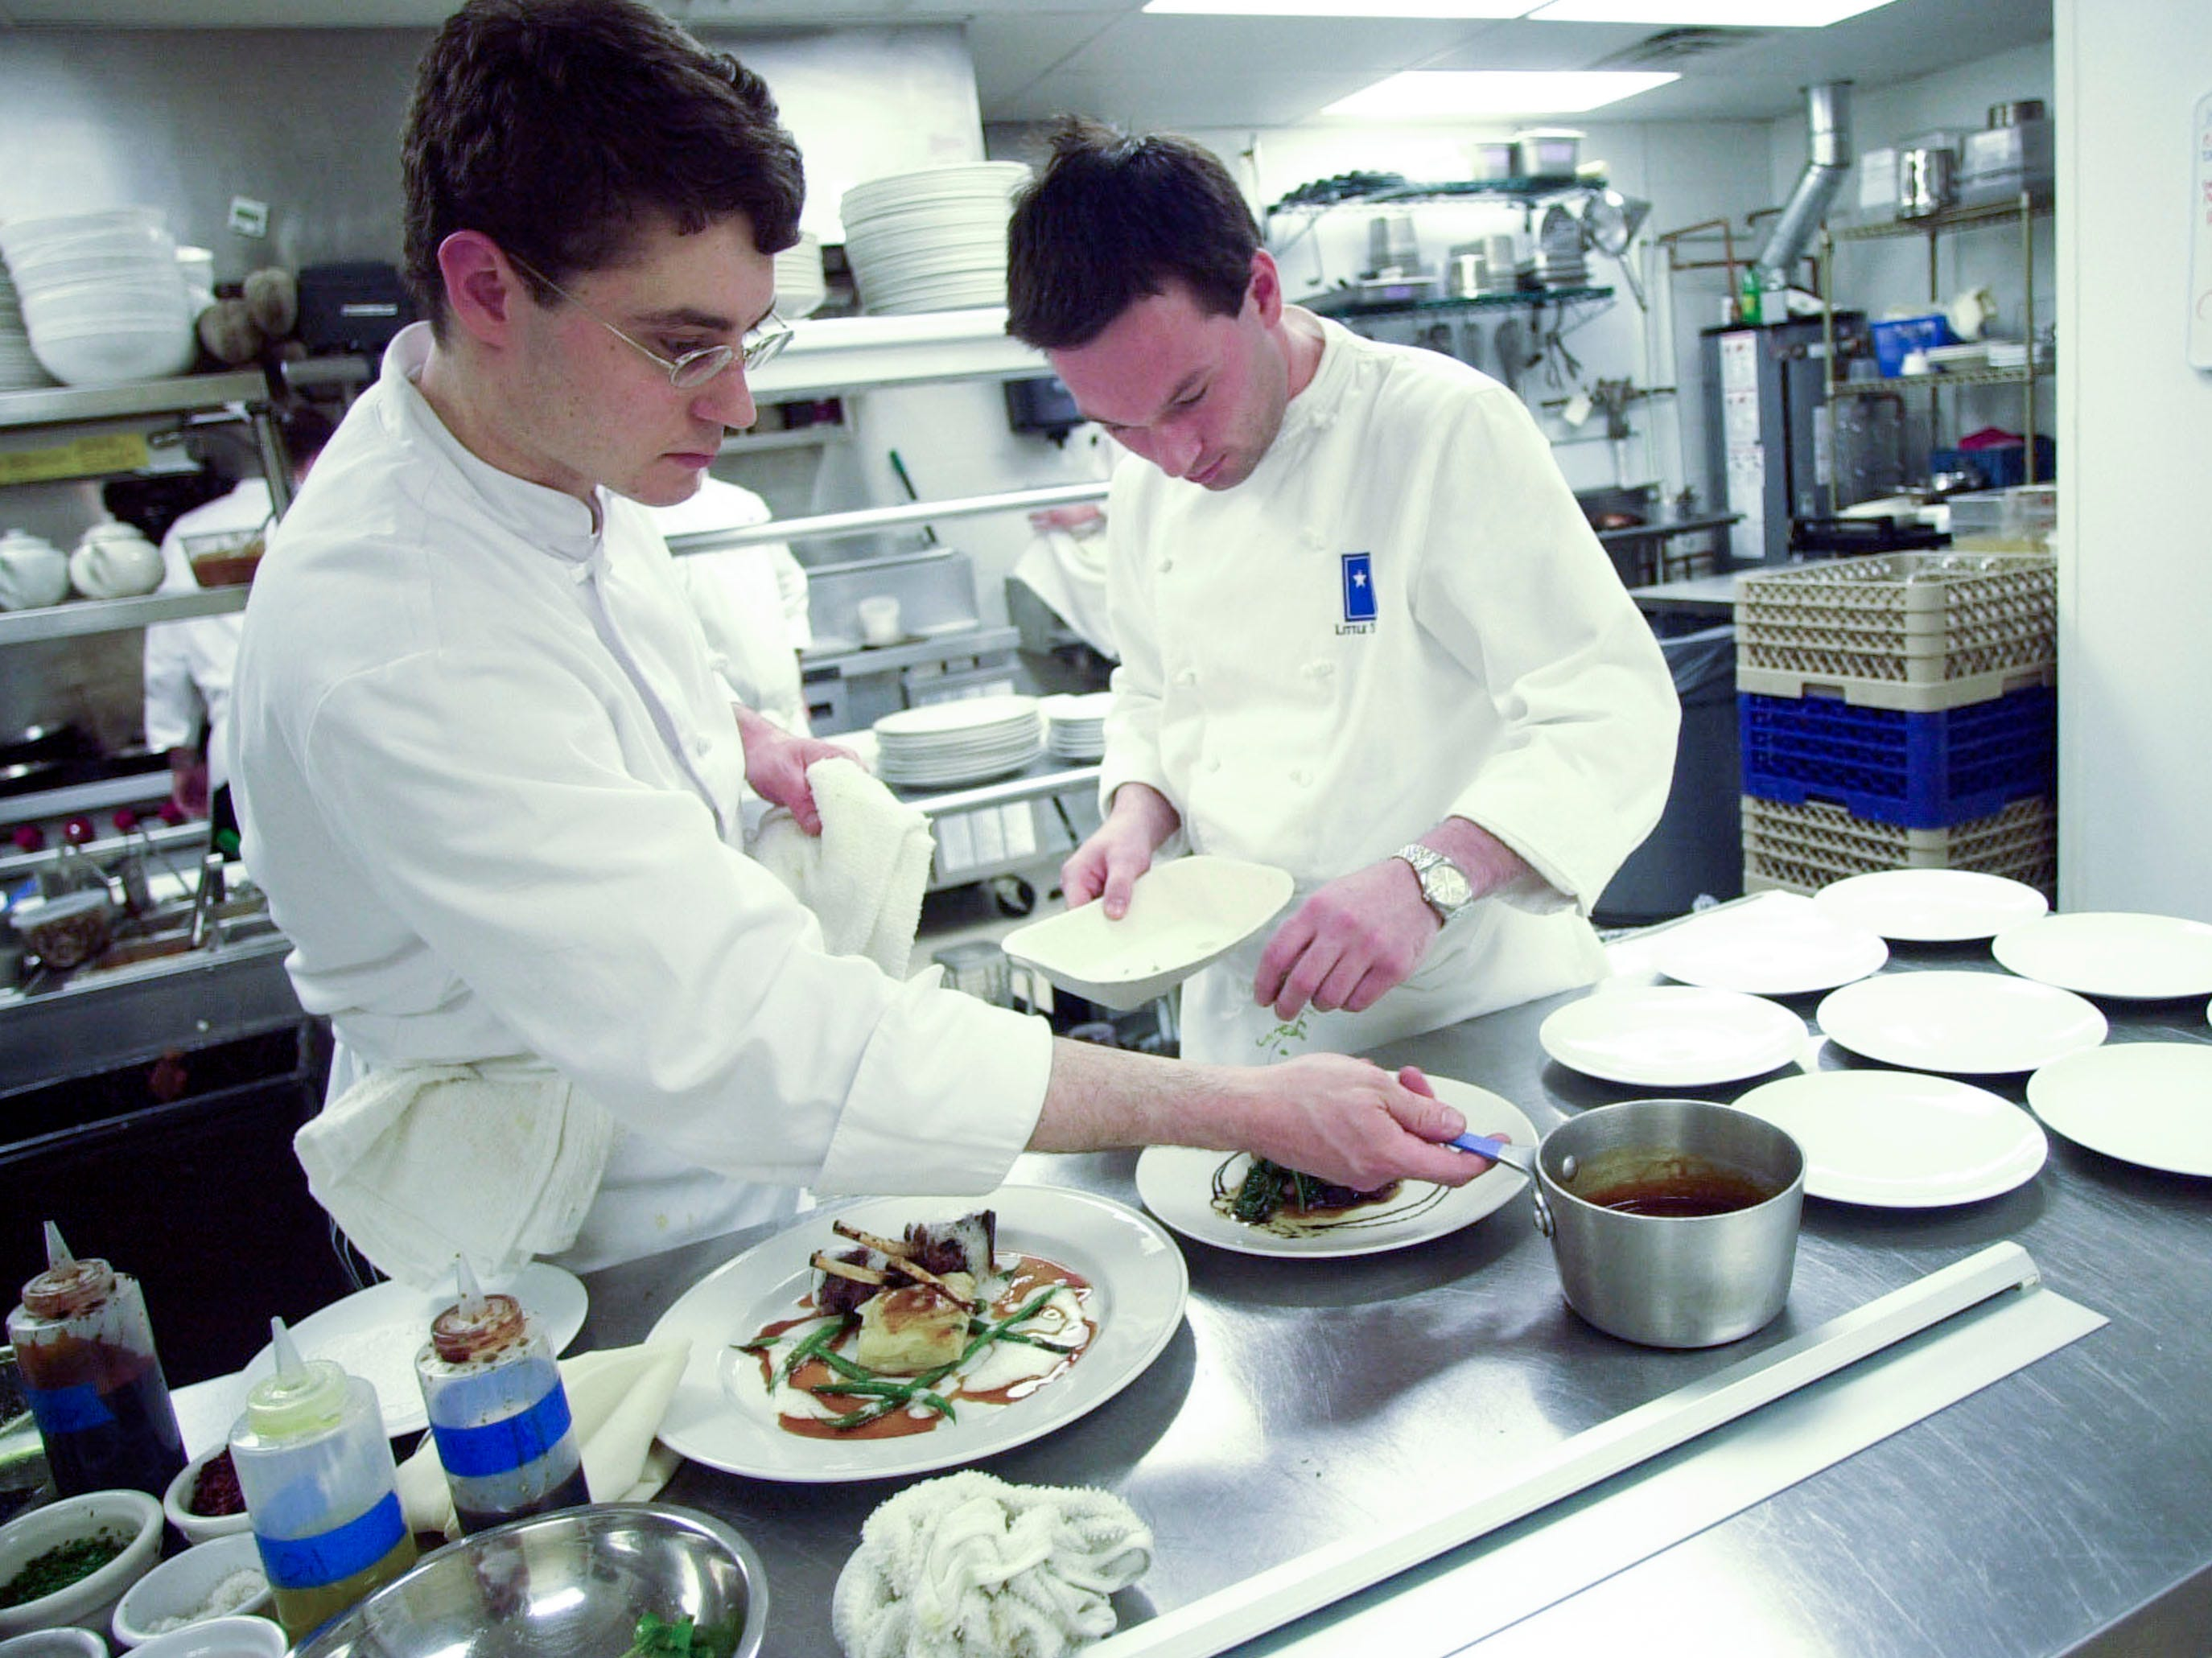 Little Star owner John McKee, right, and executive chef Chris Stallard put finishing touches on dishes ready to be served in 2003.